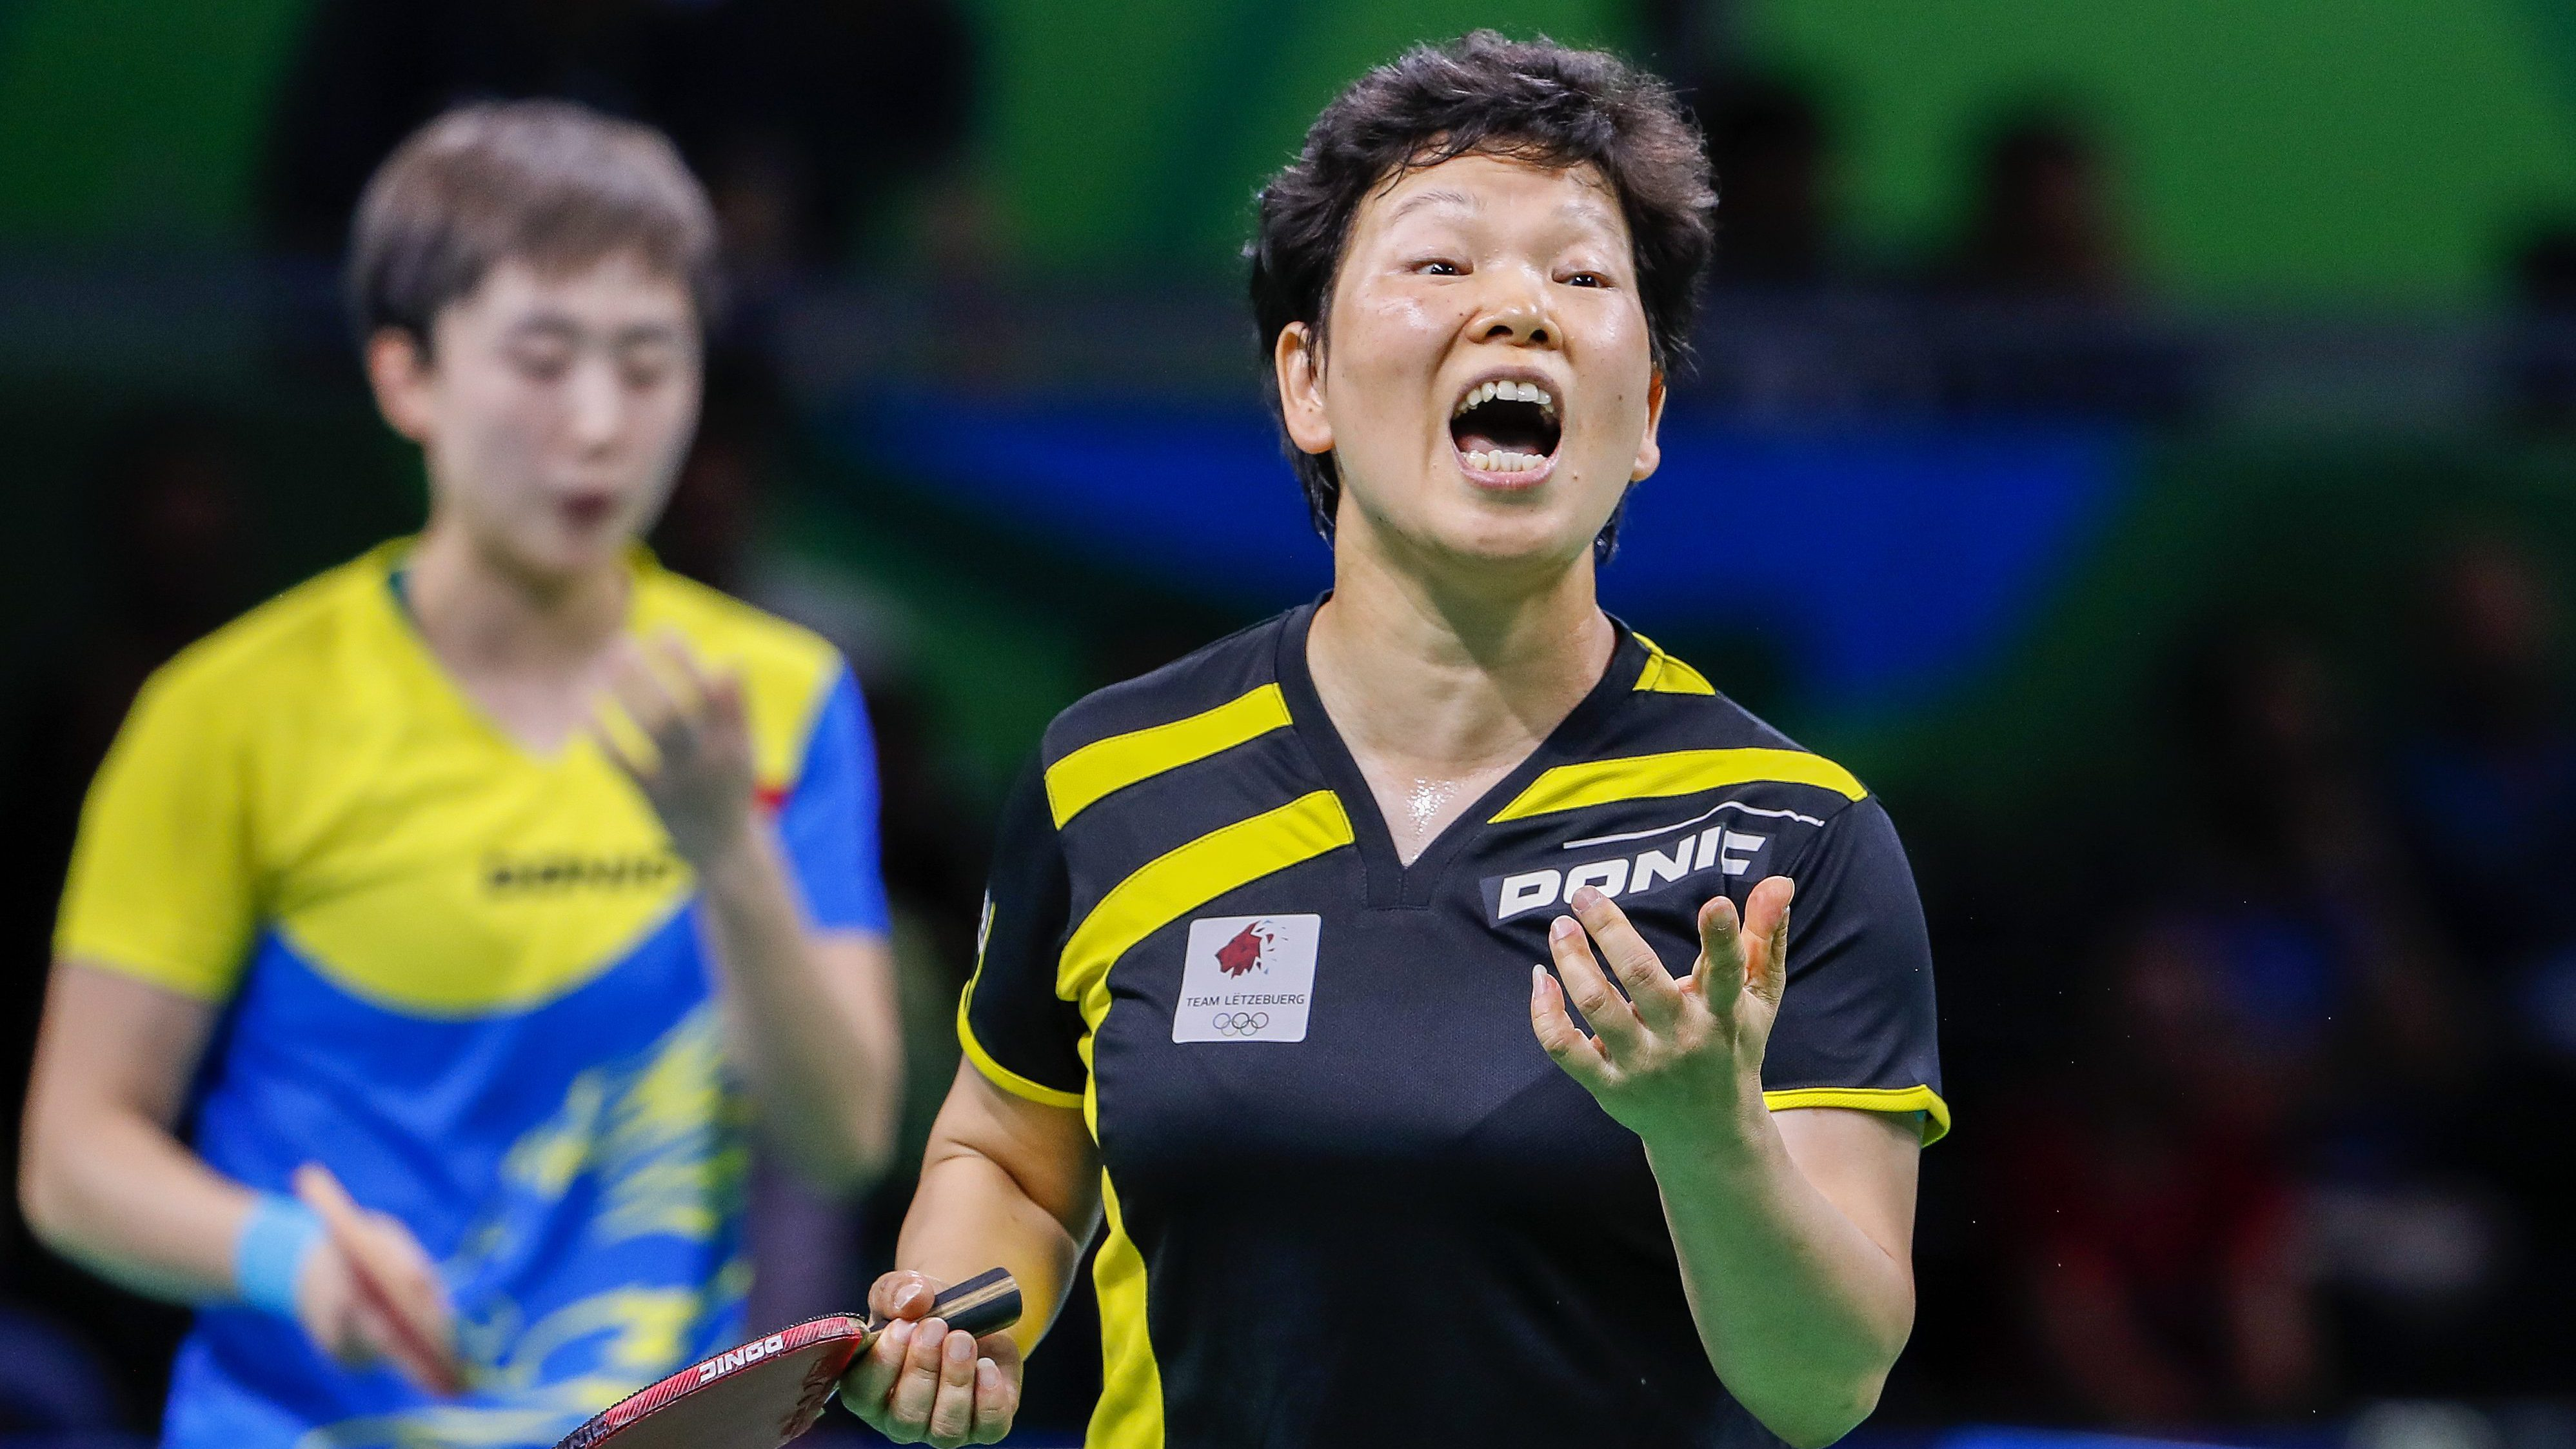 Xia Lian Ni (R) of Luxembourg reacts against Tianwei Feng (L) of Singapore during a third round Rio 2016 Olympic Games women's table tennis match, 8 August 2016.